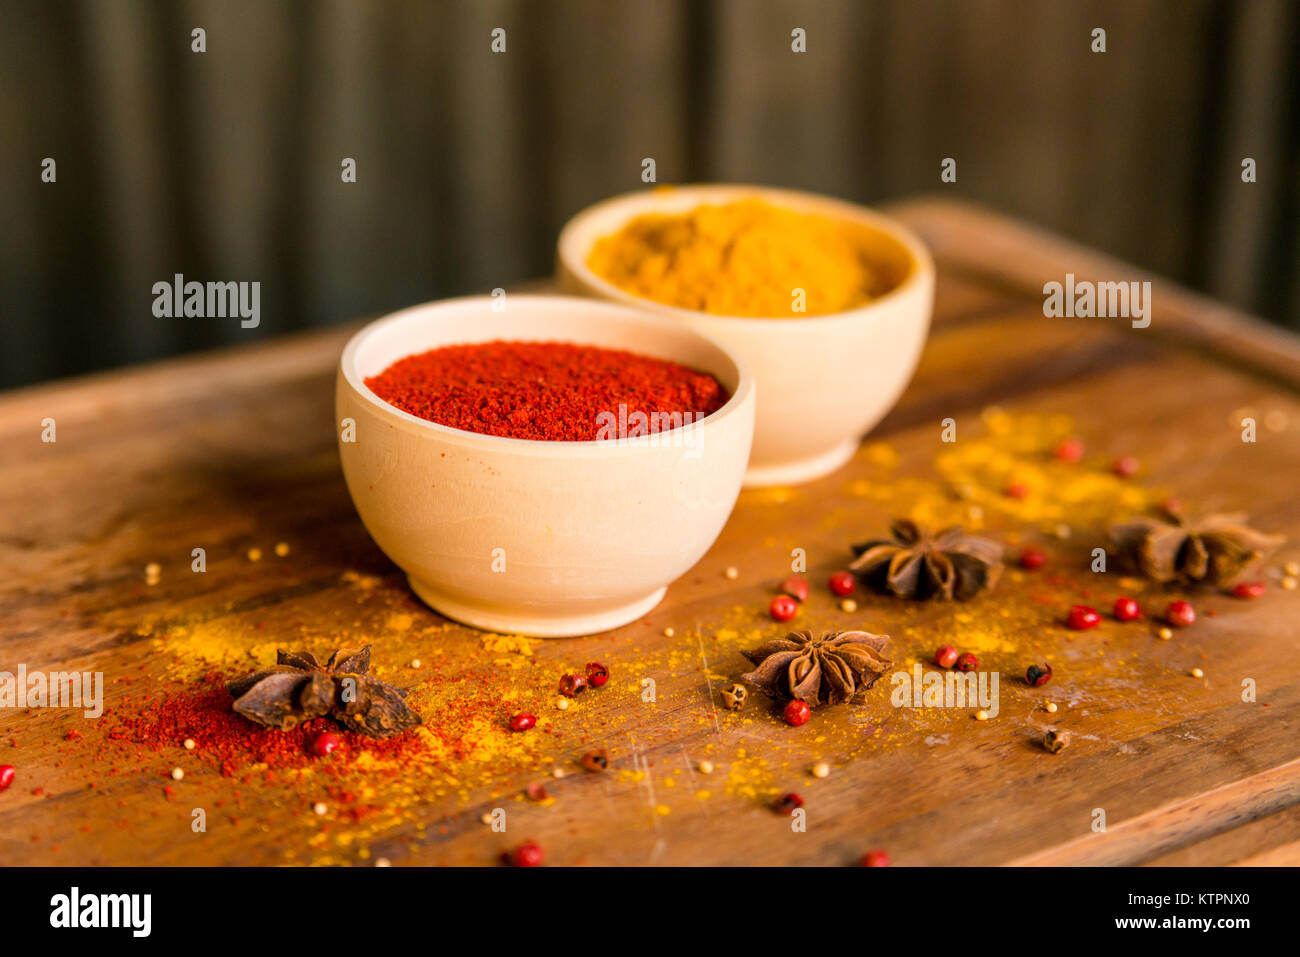 Close up two bowls filled with red paprika and yellow turmeric powder on dark wooden table covered with anise - Stock Image